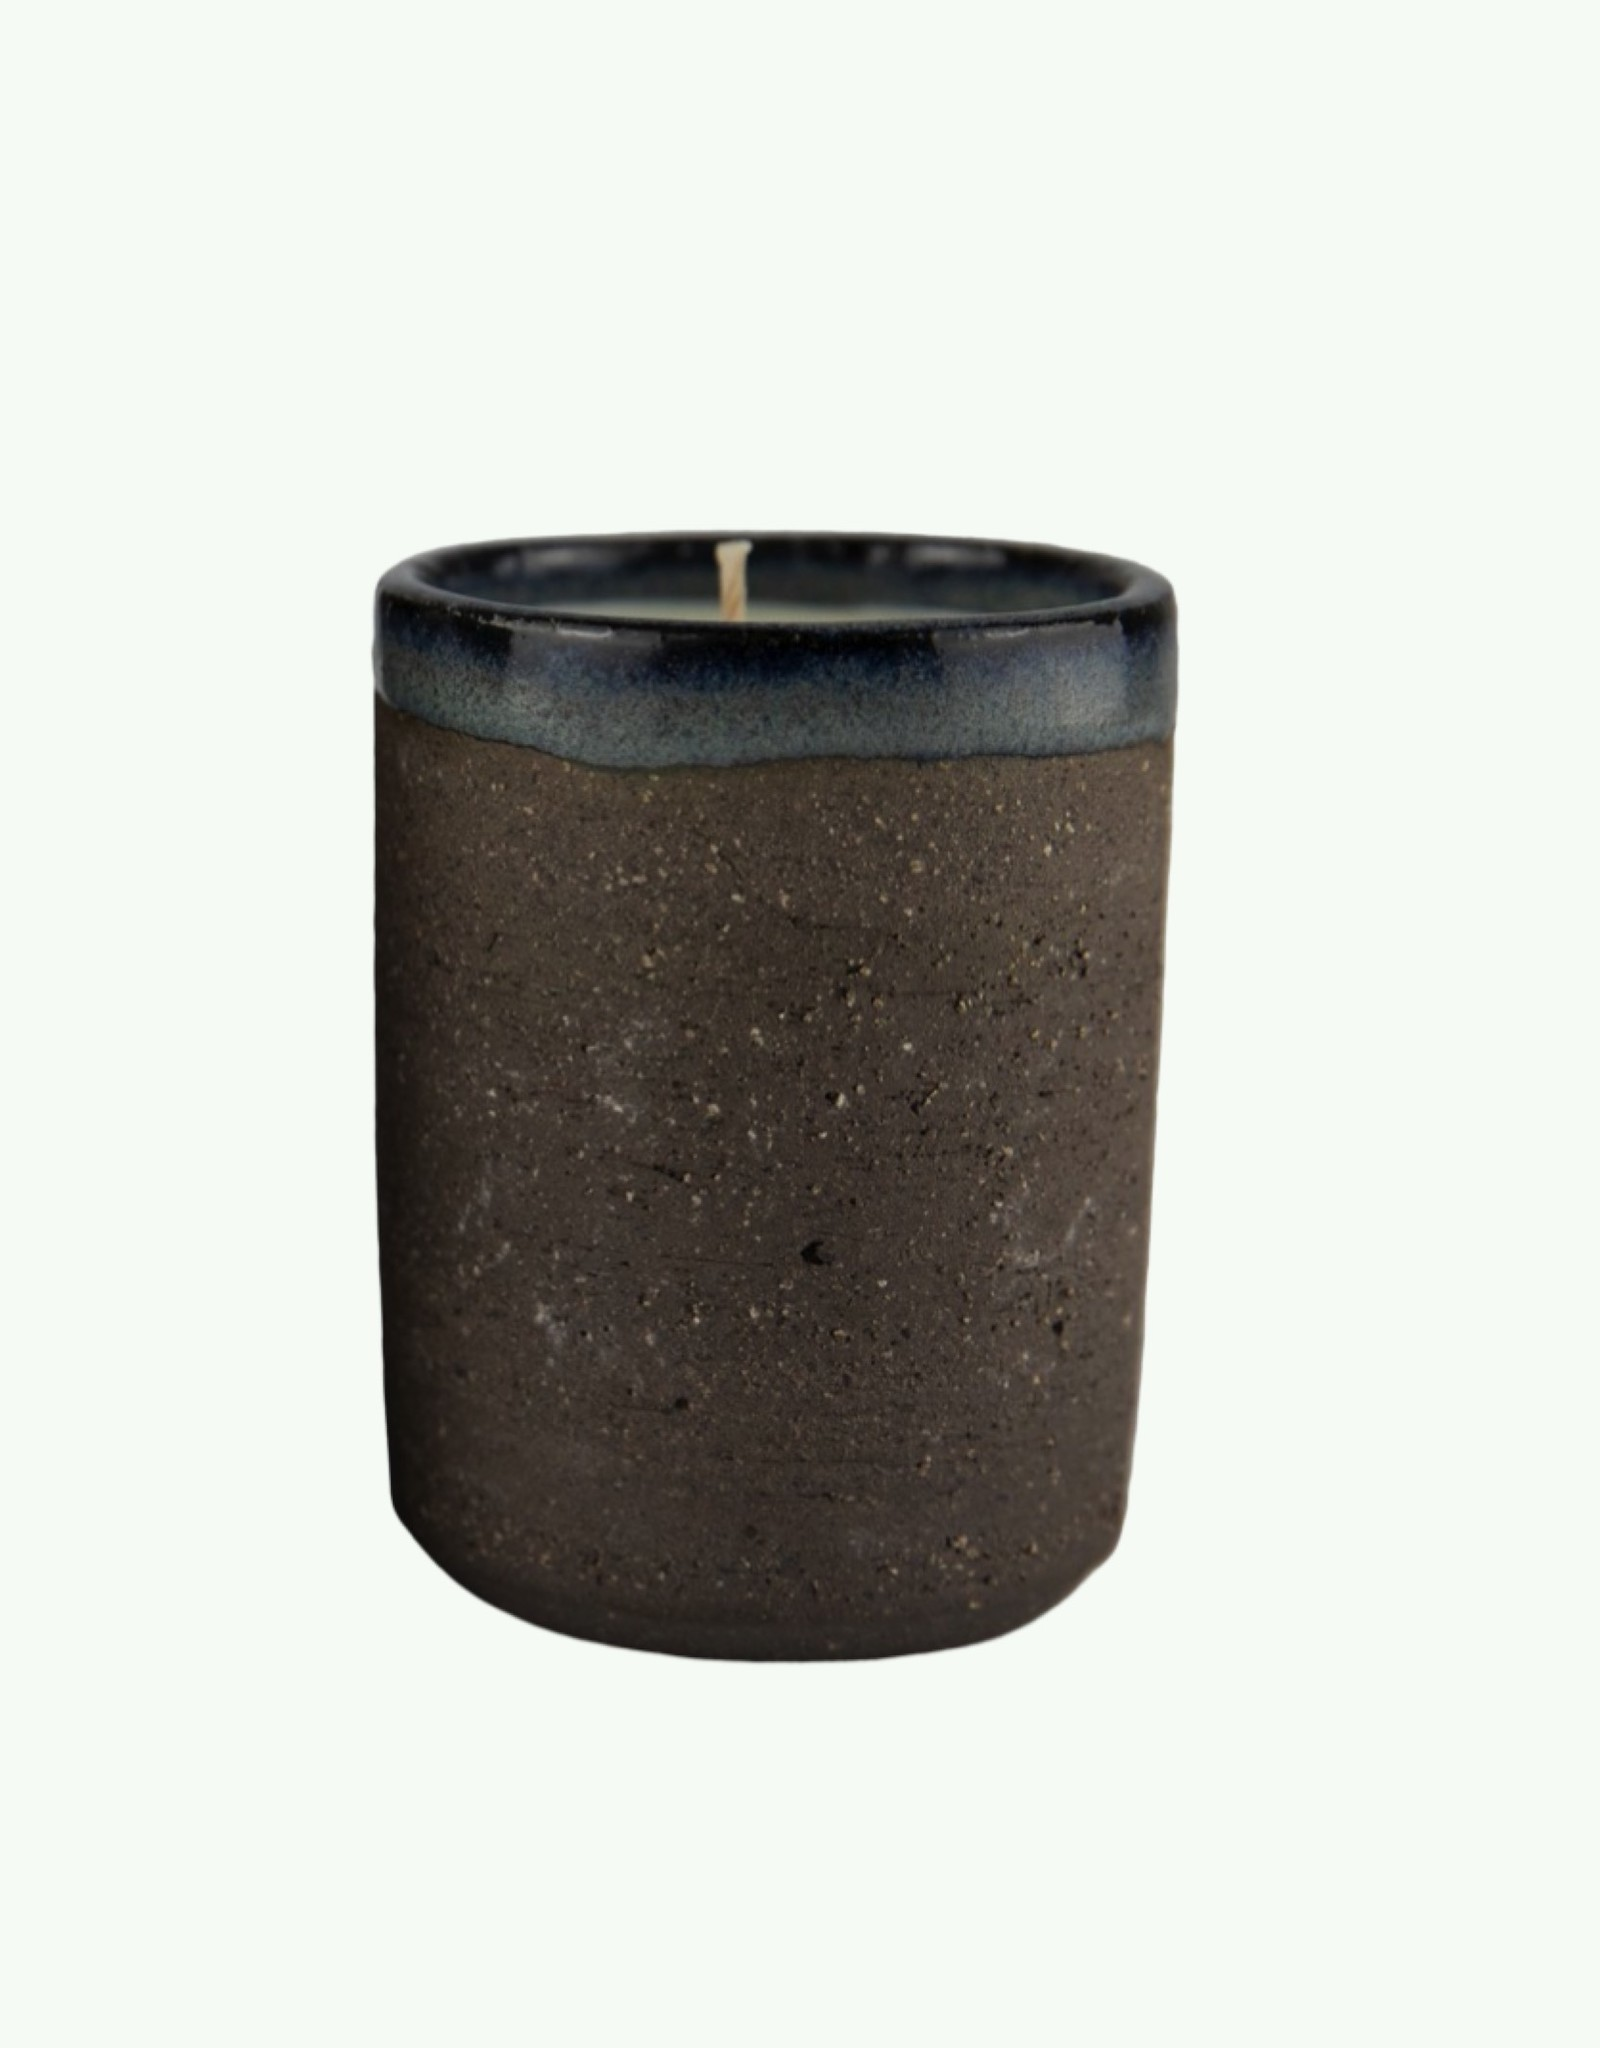 Aer AER - At Dusk - Scented Candle 125 ml